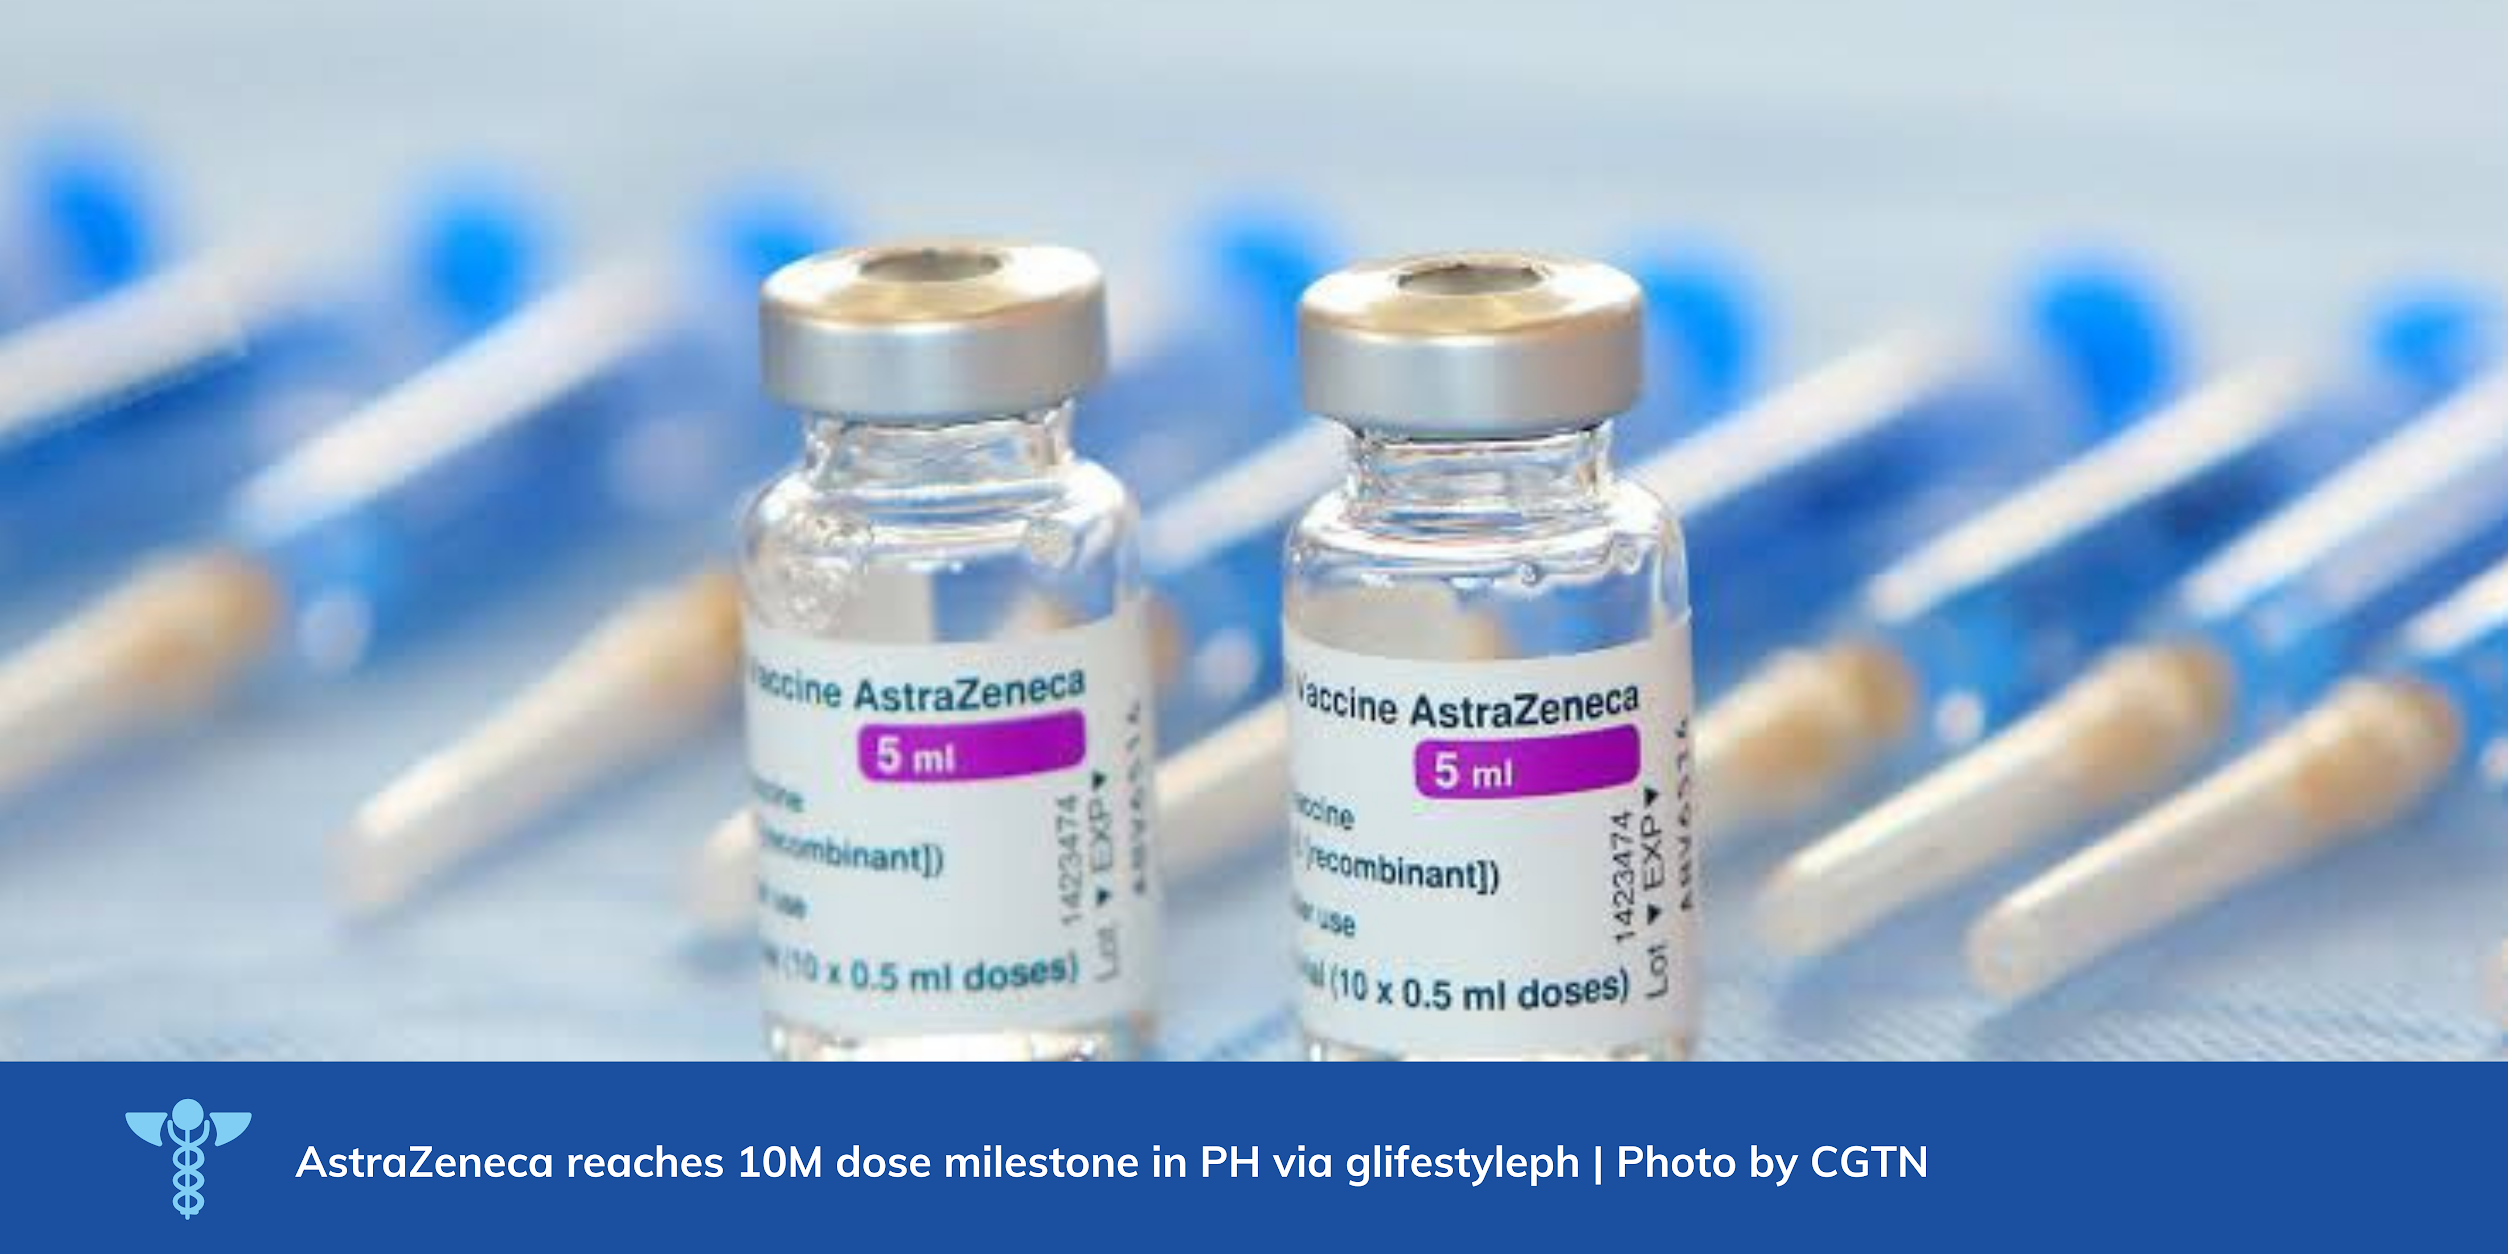 AstraZeneca delivered another 661,100 doses of COVID-19 Vaccine AstraZeneca to the Philippines in October.